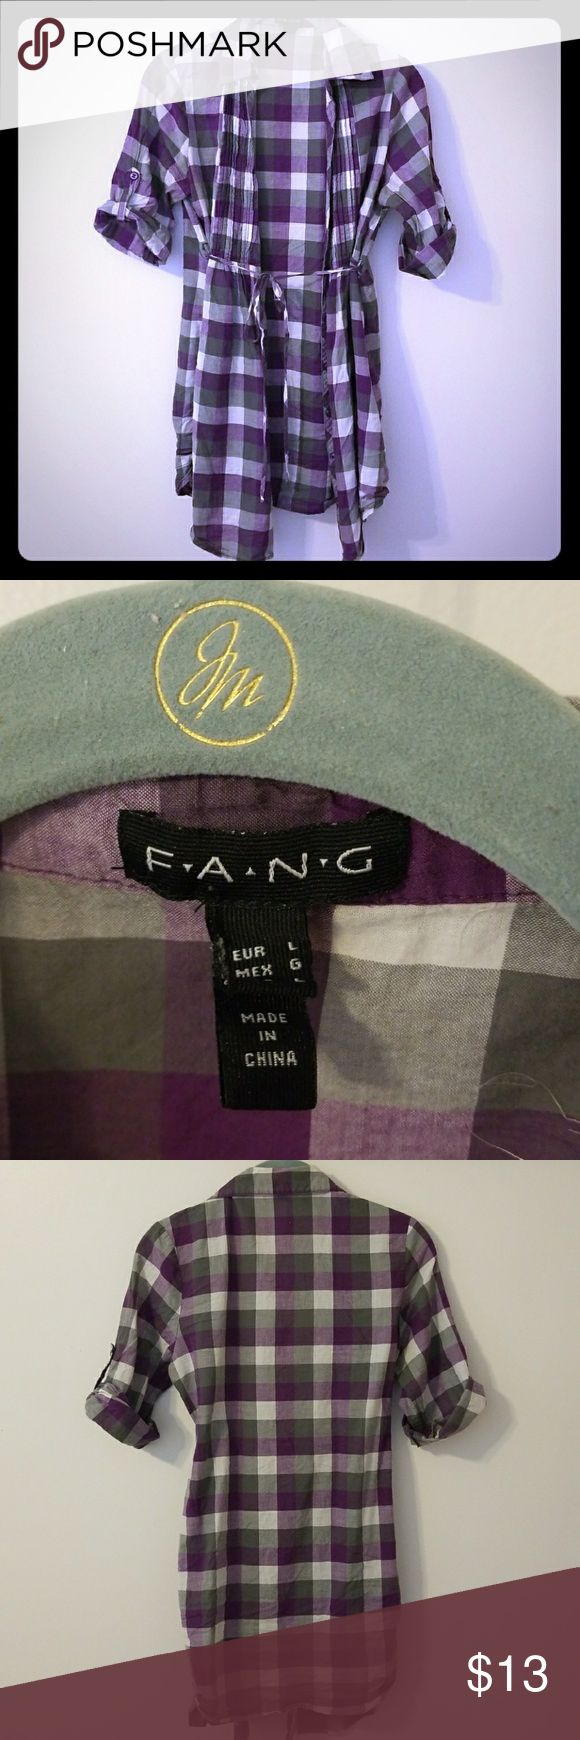 """FANG Purple and Grey Dress Super cute purple and grey plaid """"F.A.N.G"""" dress. Bought for an event an worn once. It's about thigh-length on me, but I'm pretty short too! fang Dresses Midi"""